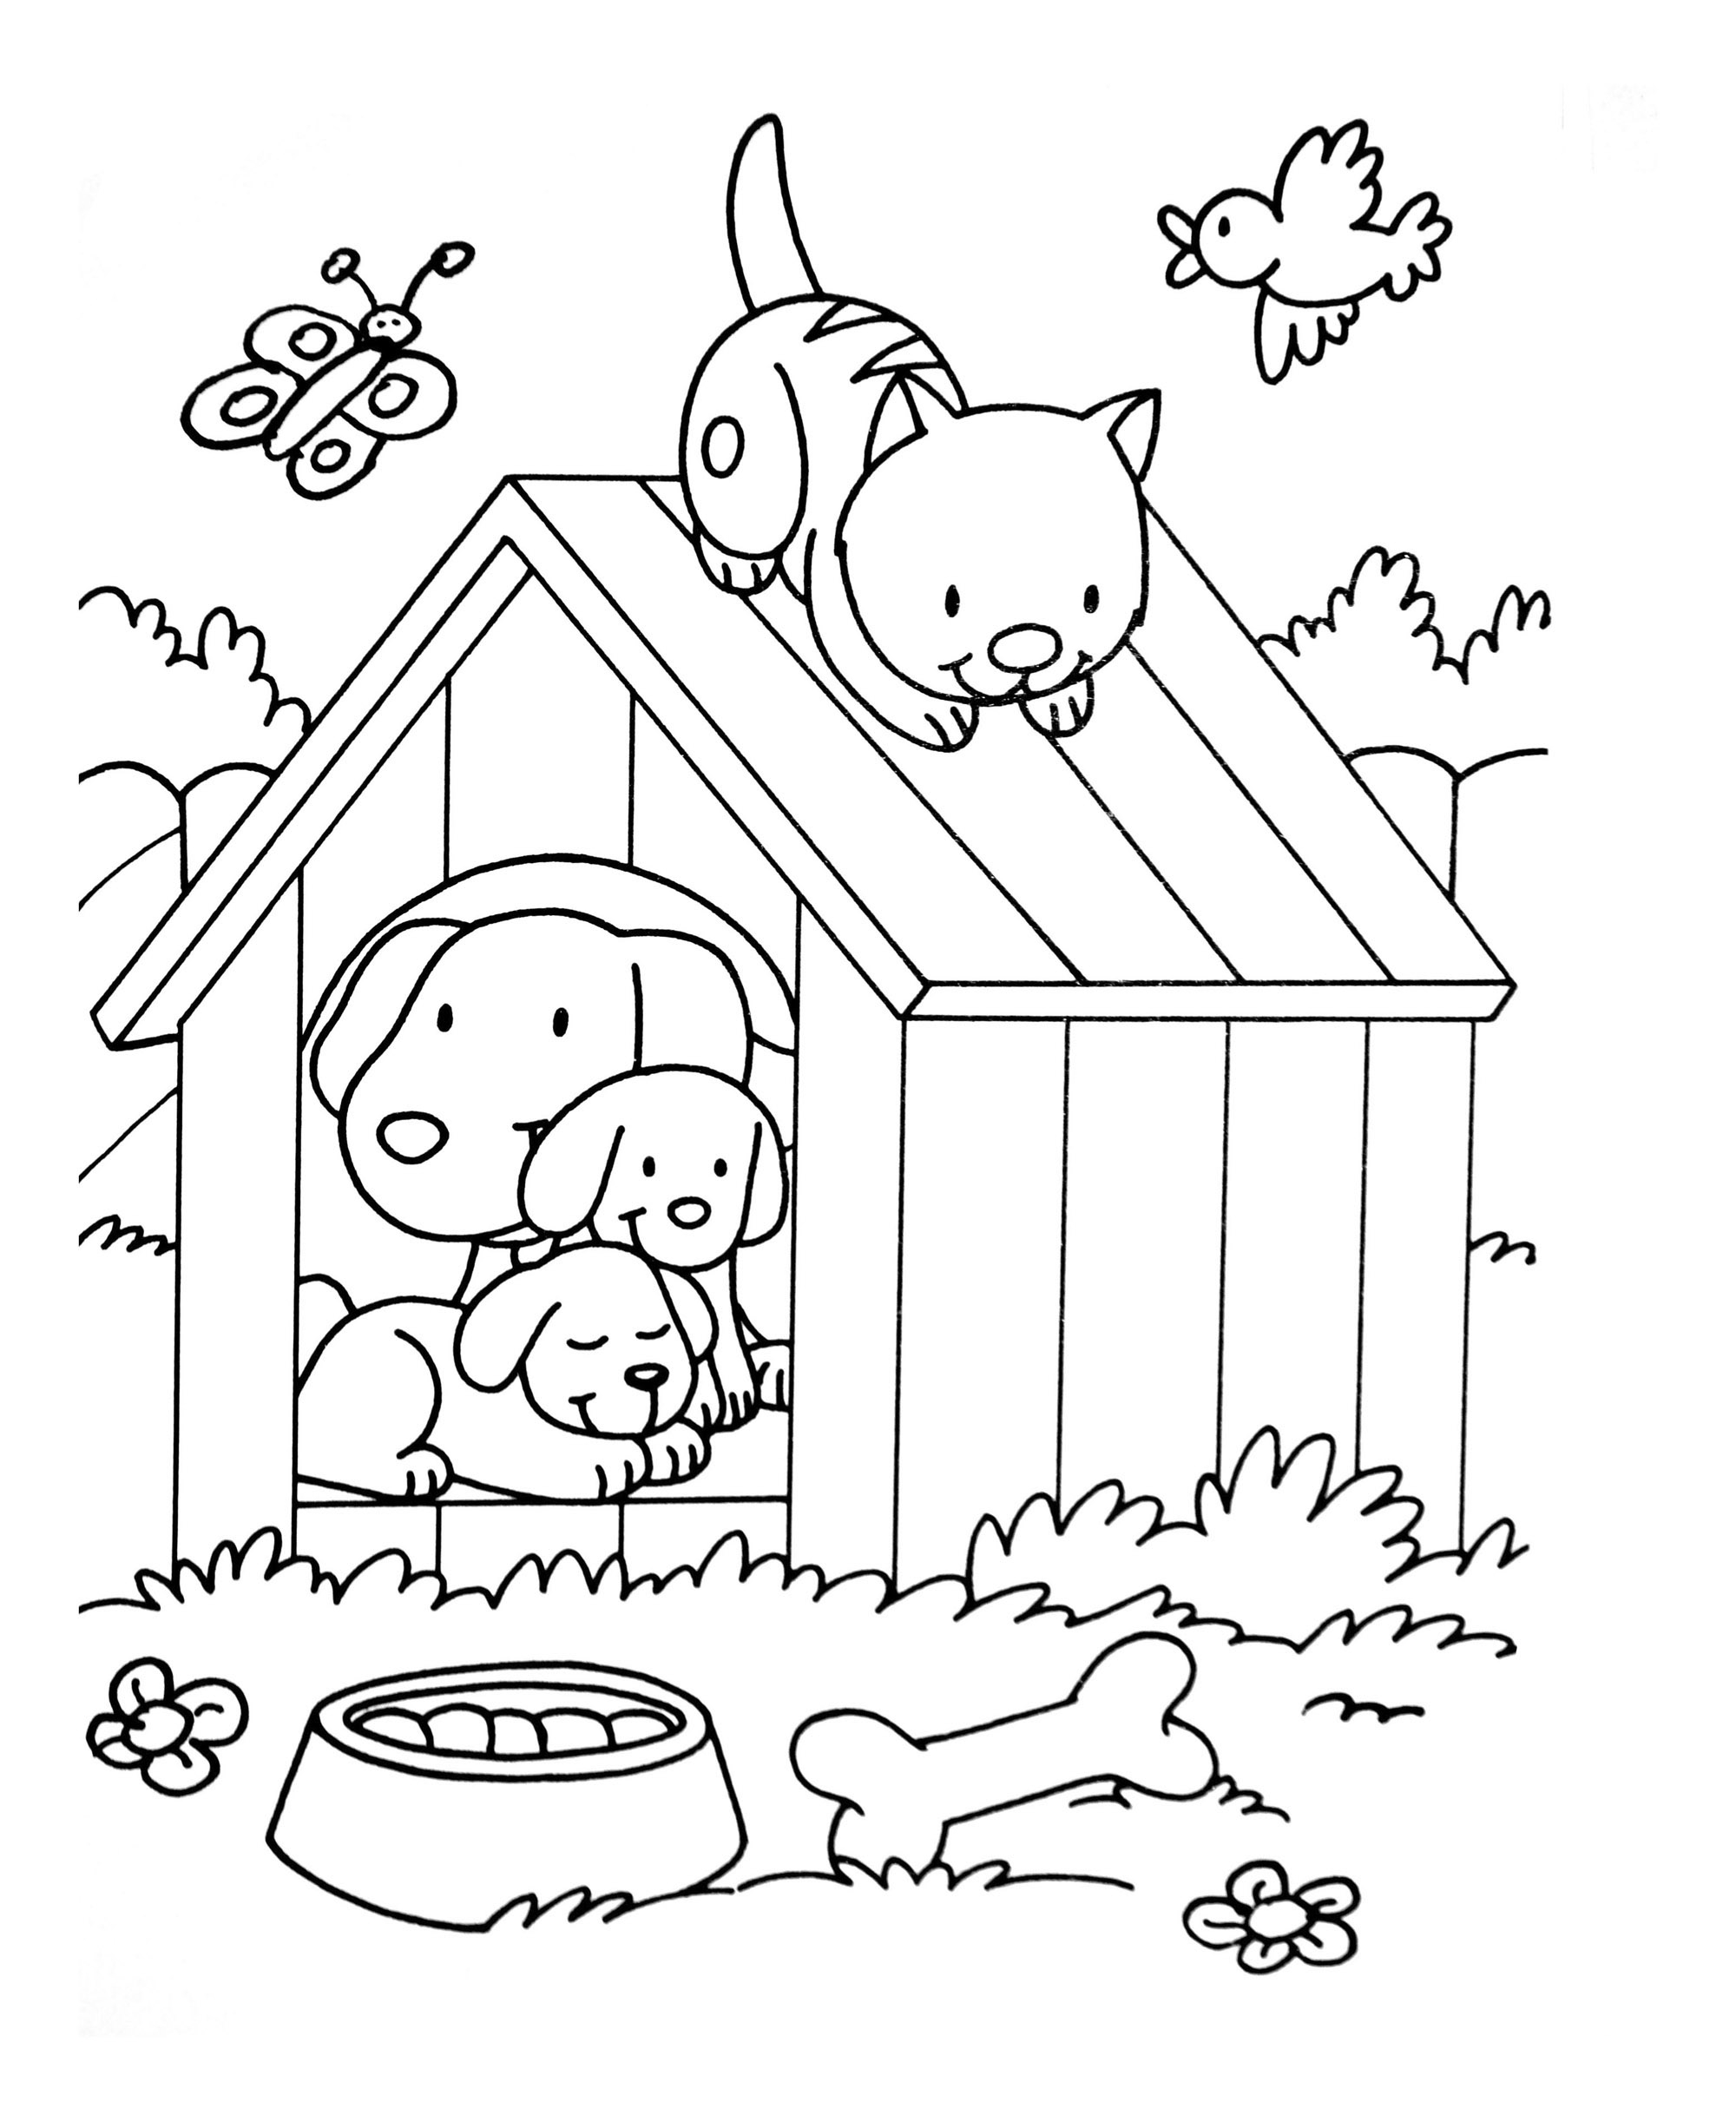 Dog And Cat Coloring Pages Dog Cat Birdjpg Animal Coloring Pages For Kids To Print Color Birijus Com